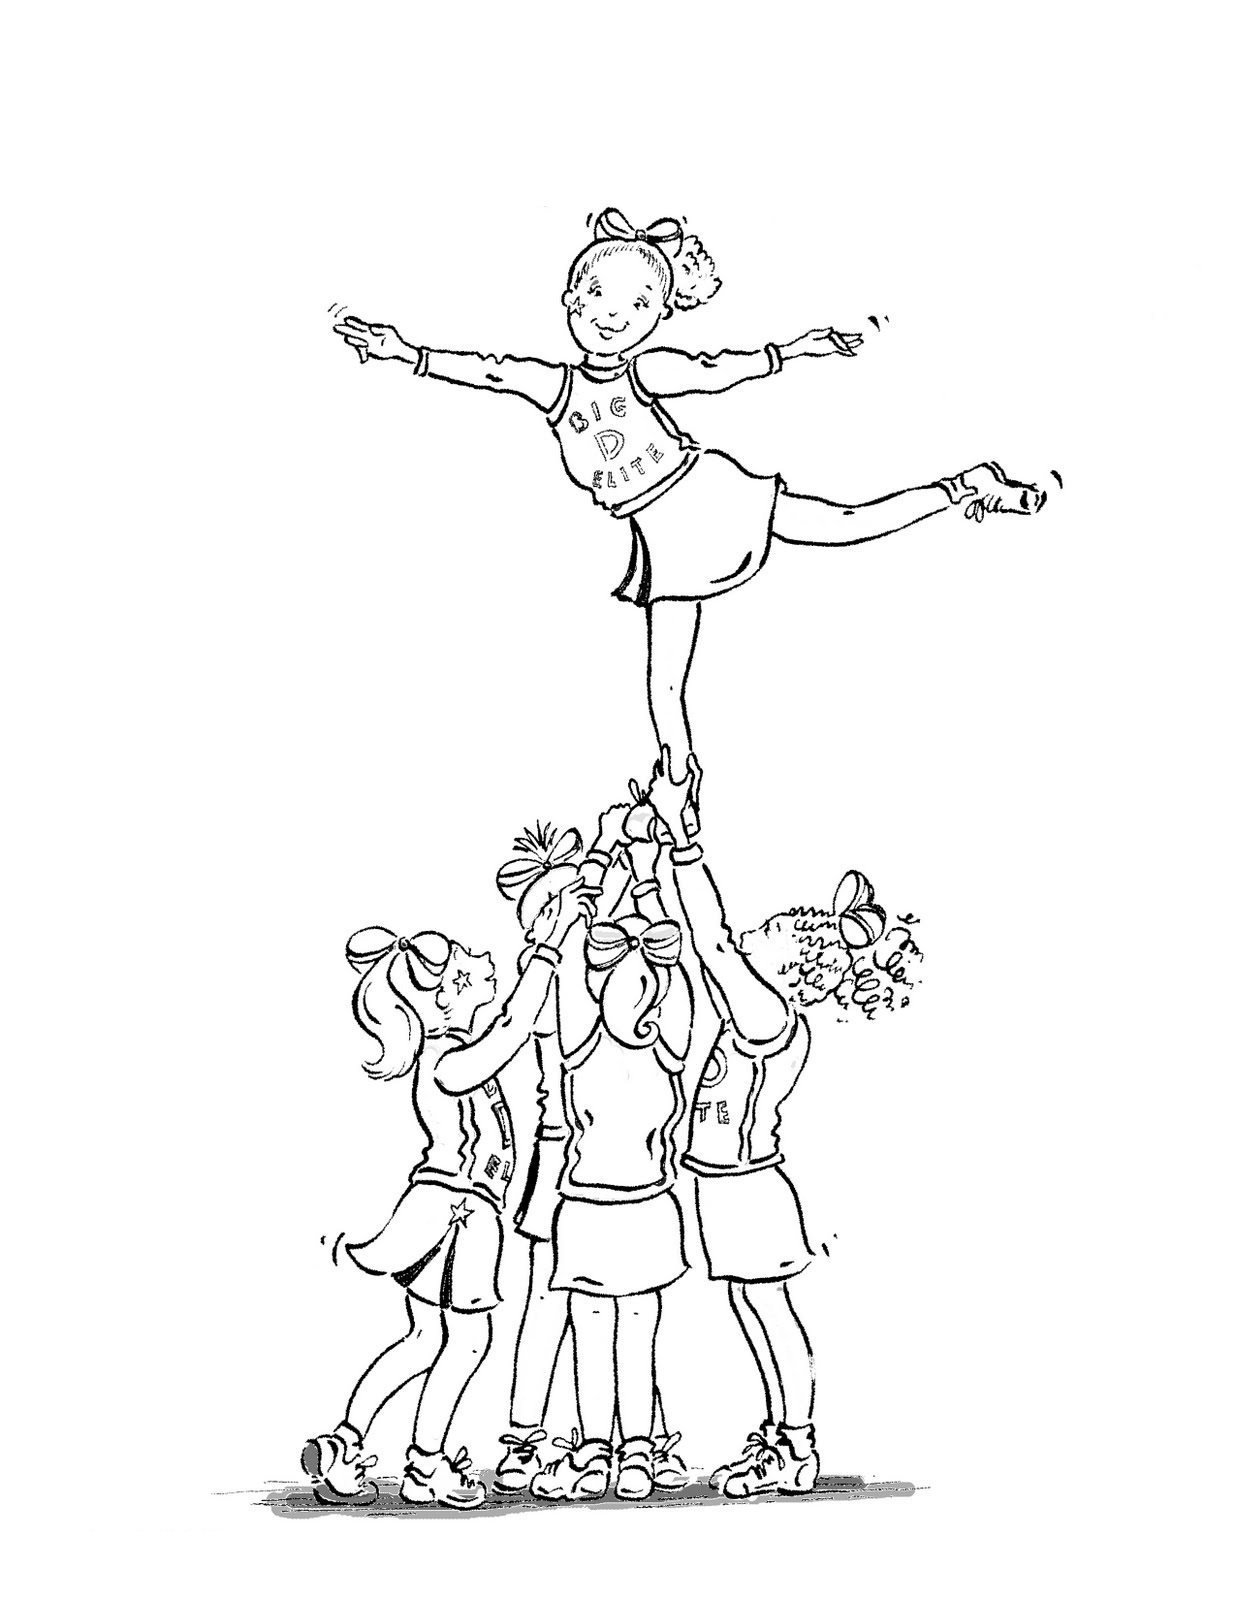 cheerleading coloring sheets printable cheerleading coloring pages for kids cool2bkids sheets cheerleading coloring